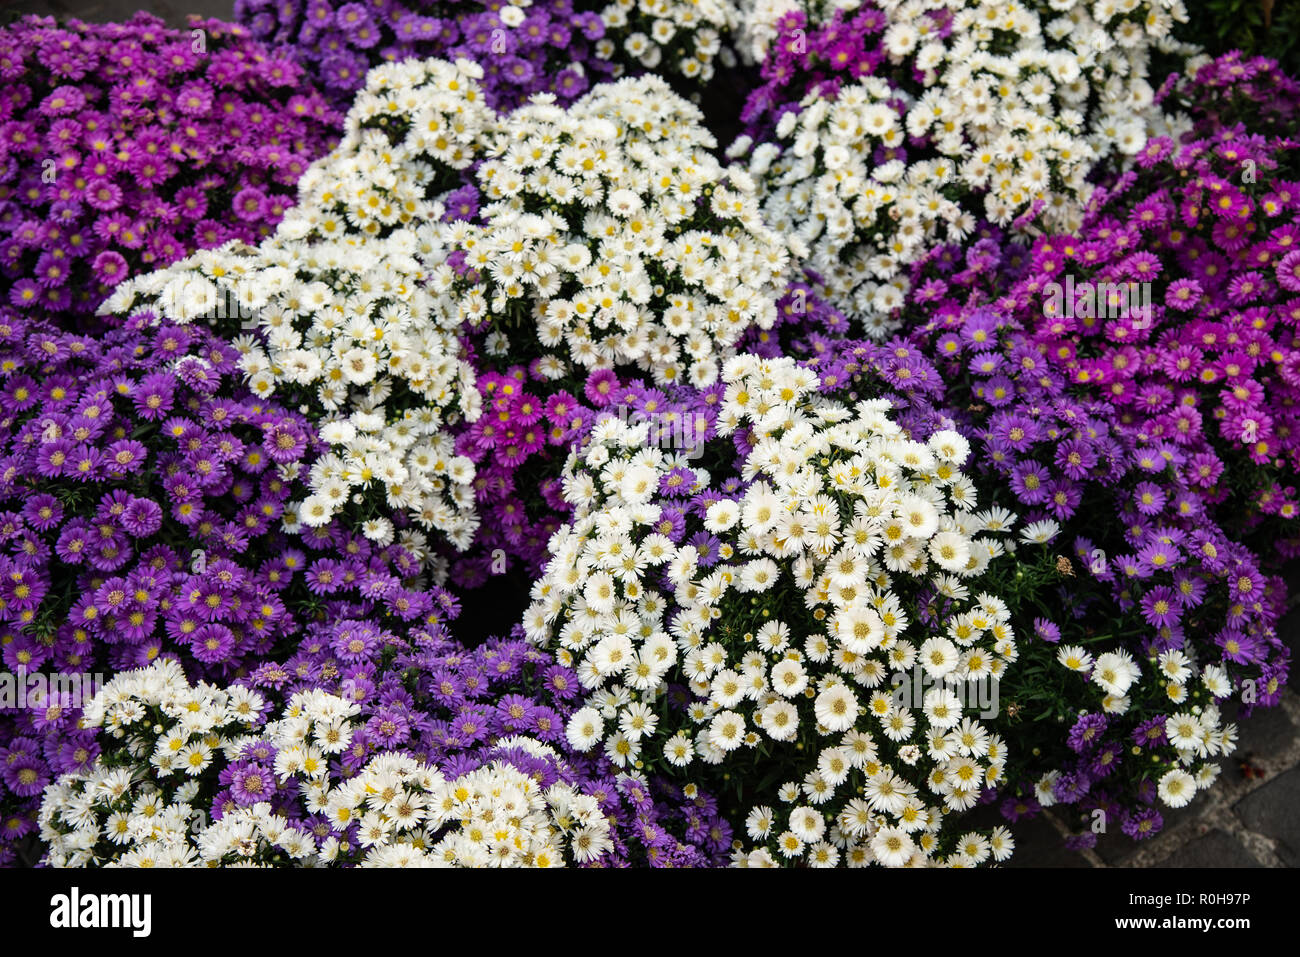 Bouquets Of Flowers White And Purple Aster Flowers Symphyotrichum